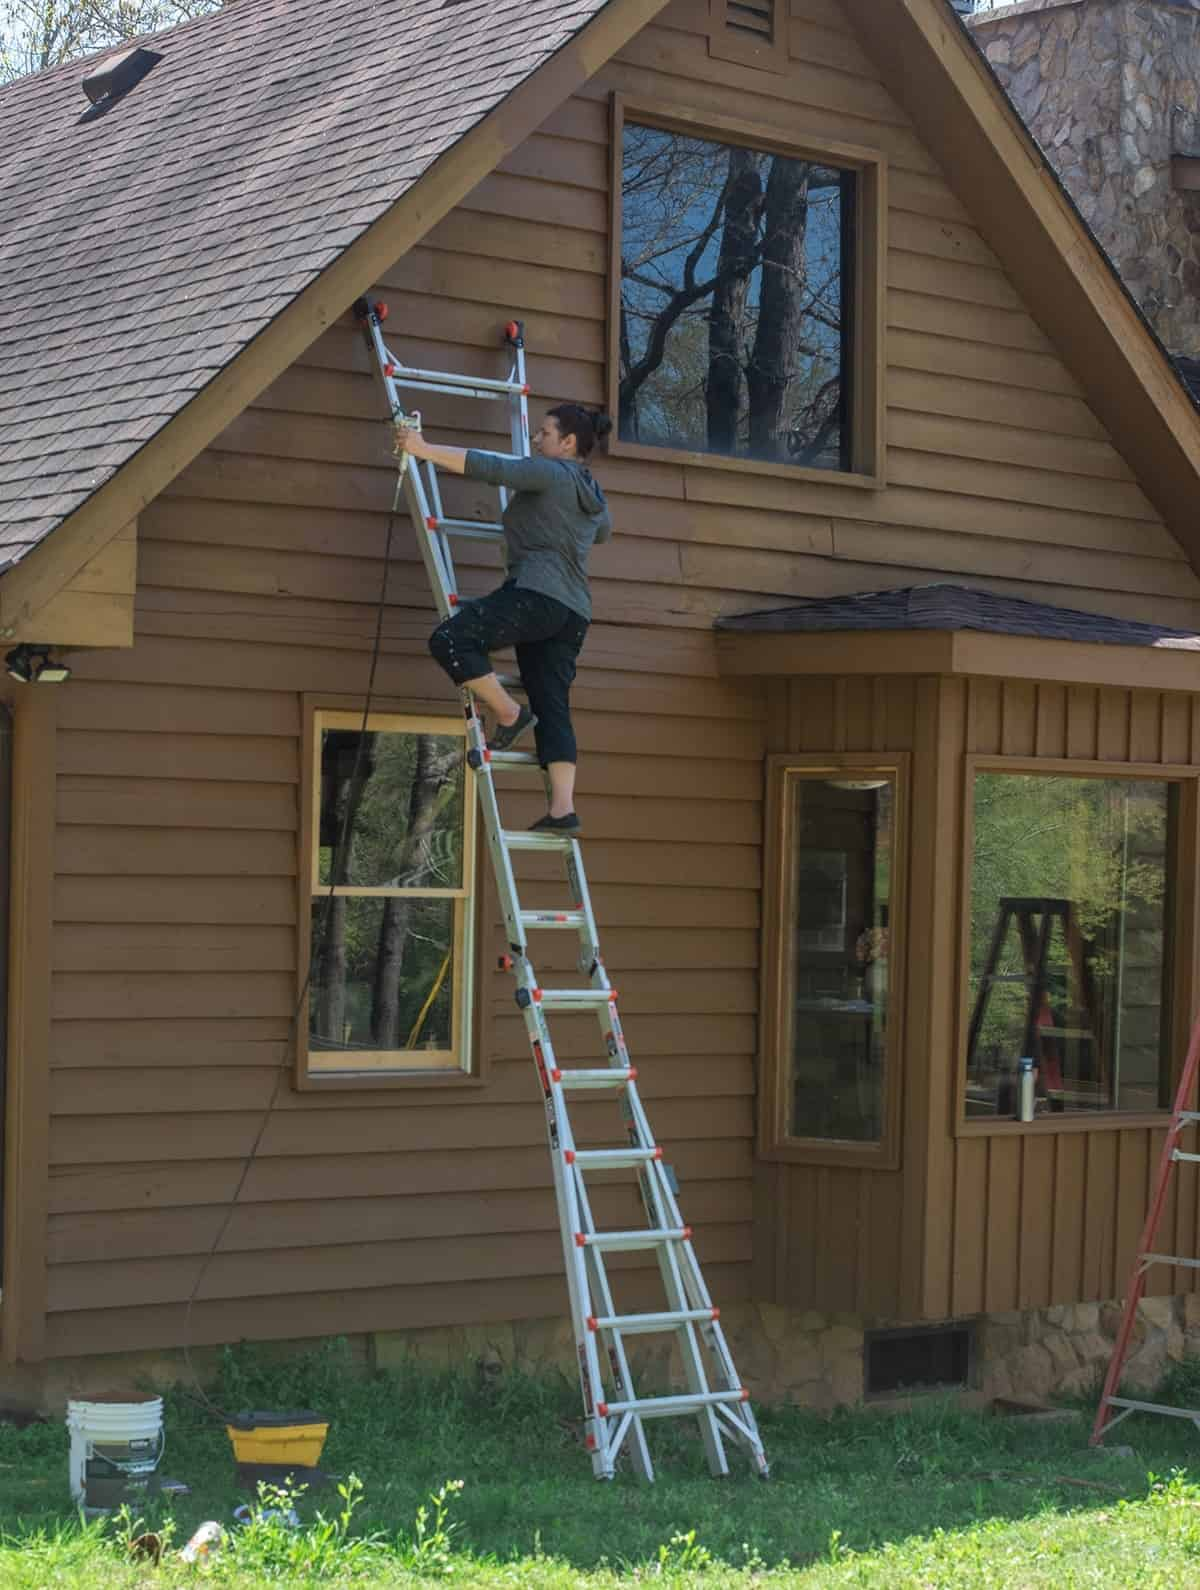 Side view of exterior of home midway through renovation. Woman on a ladder using paint sprayer to stain the home.